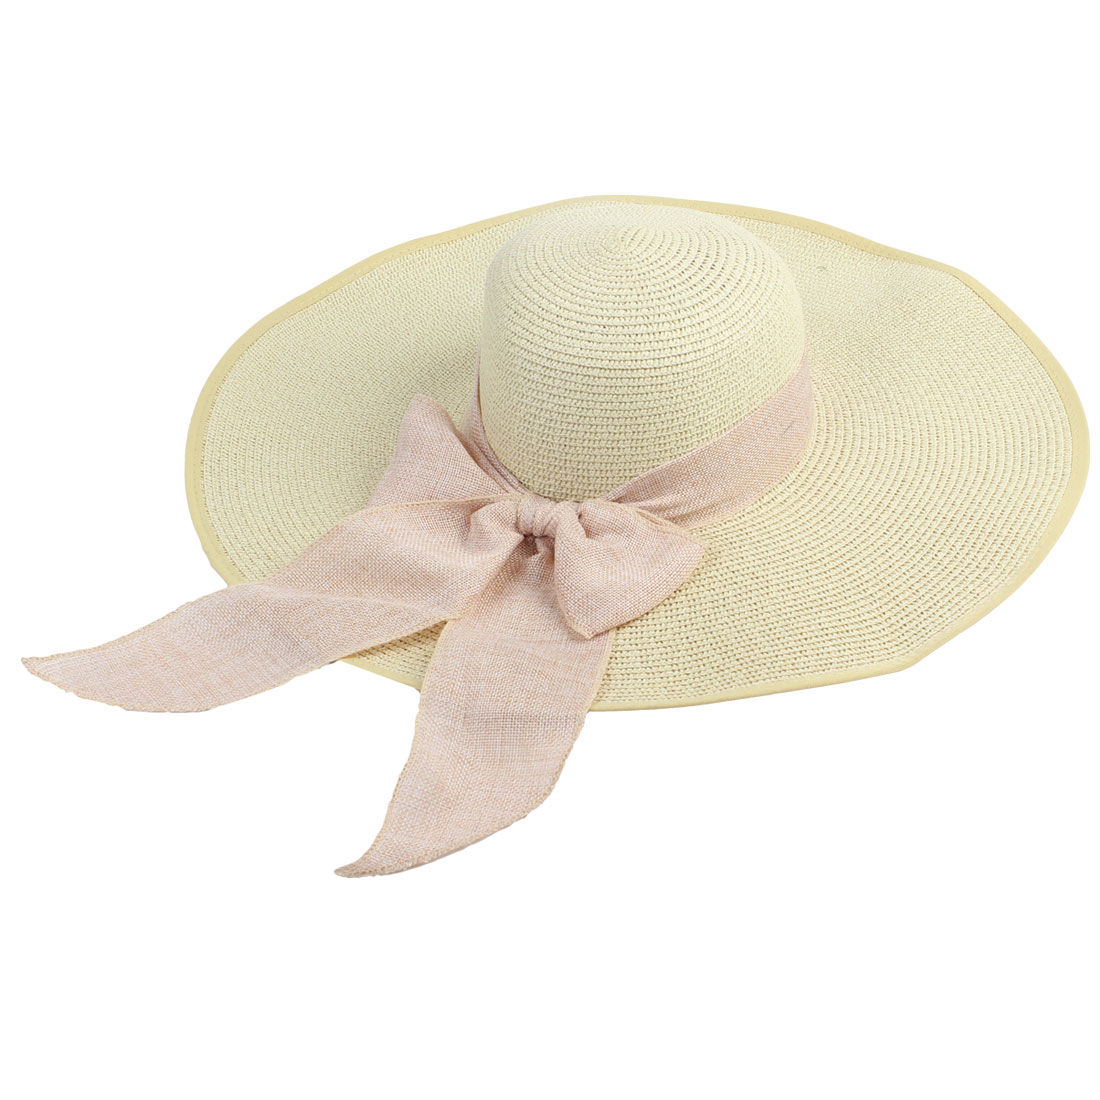 Summer Bow Tie Band Decor Straw Beach Sun Hat Beige for Ladies